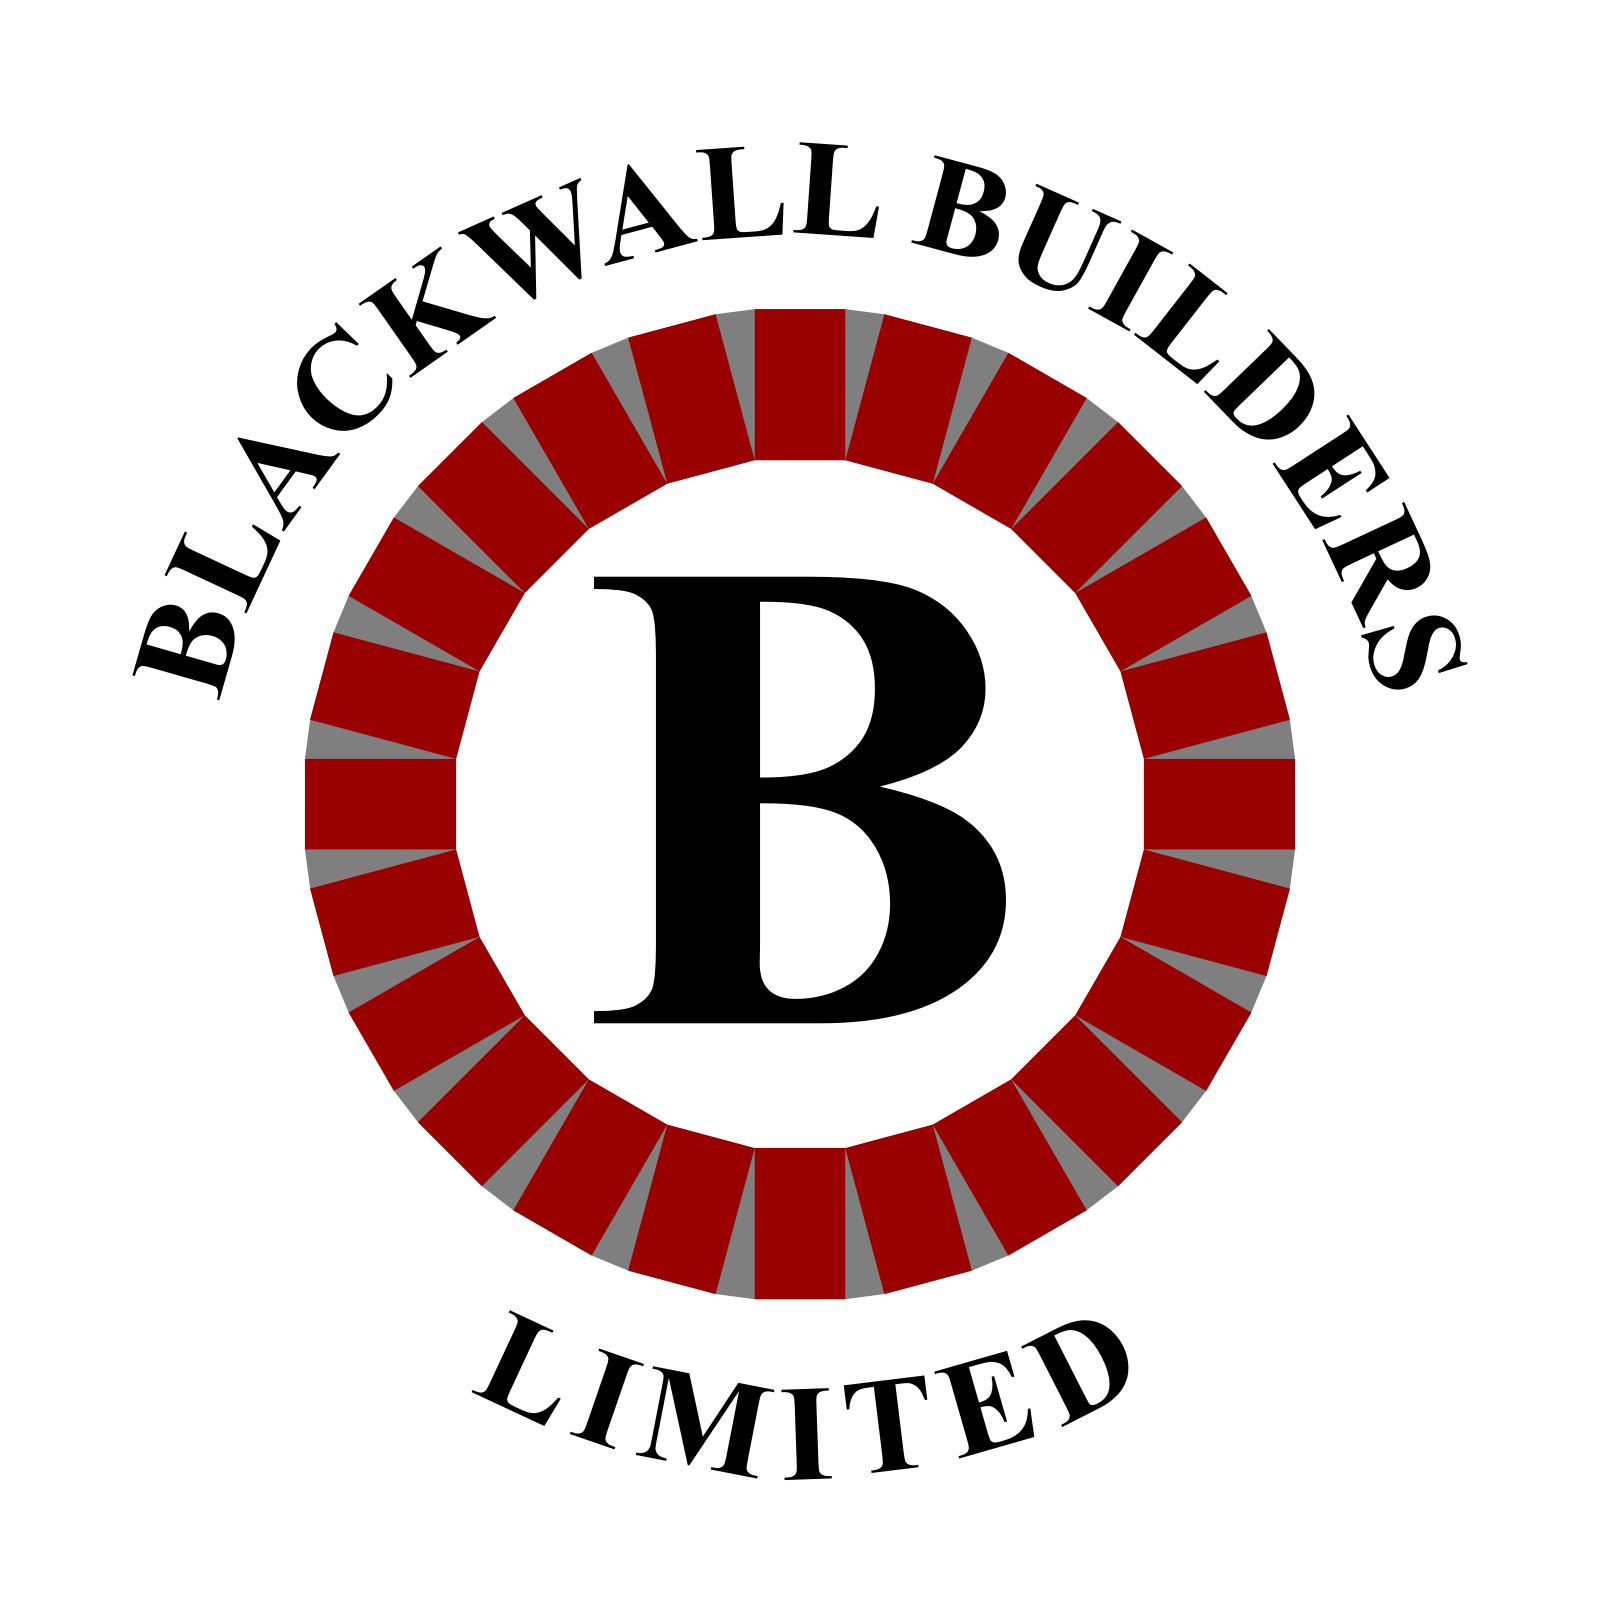 Blackwall Builders